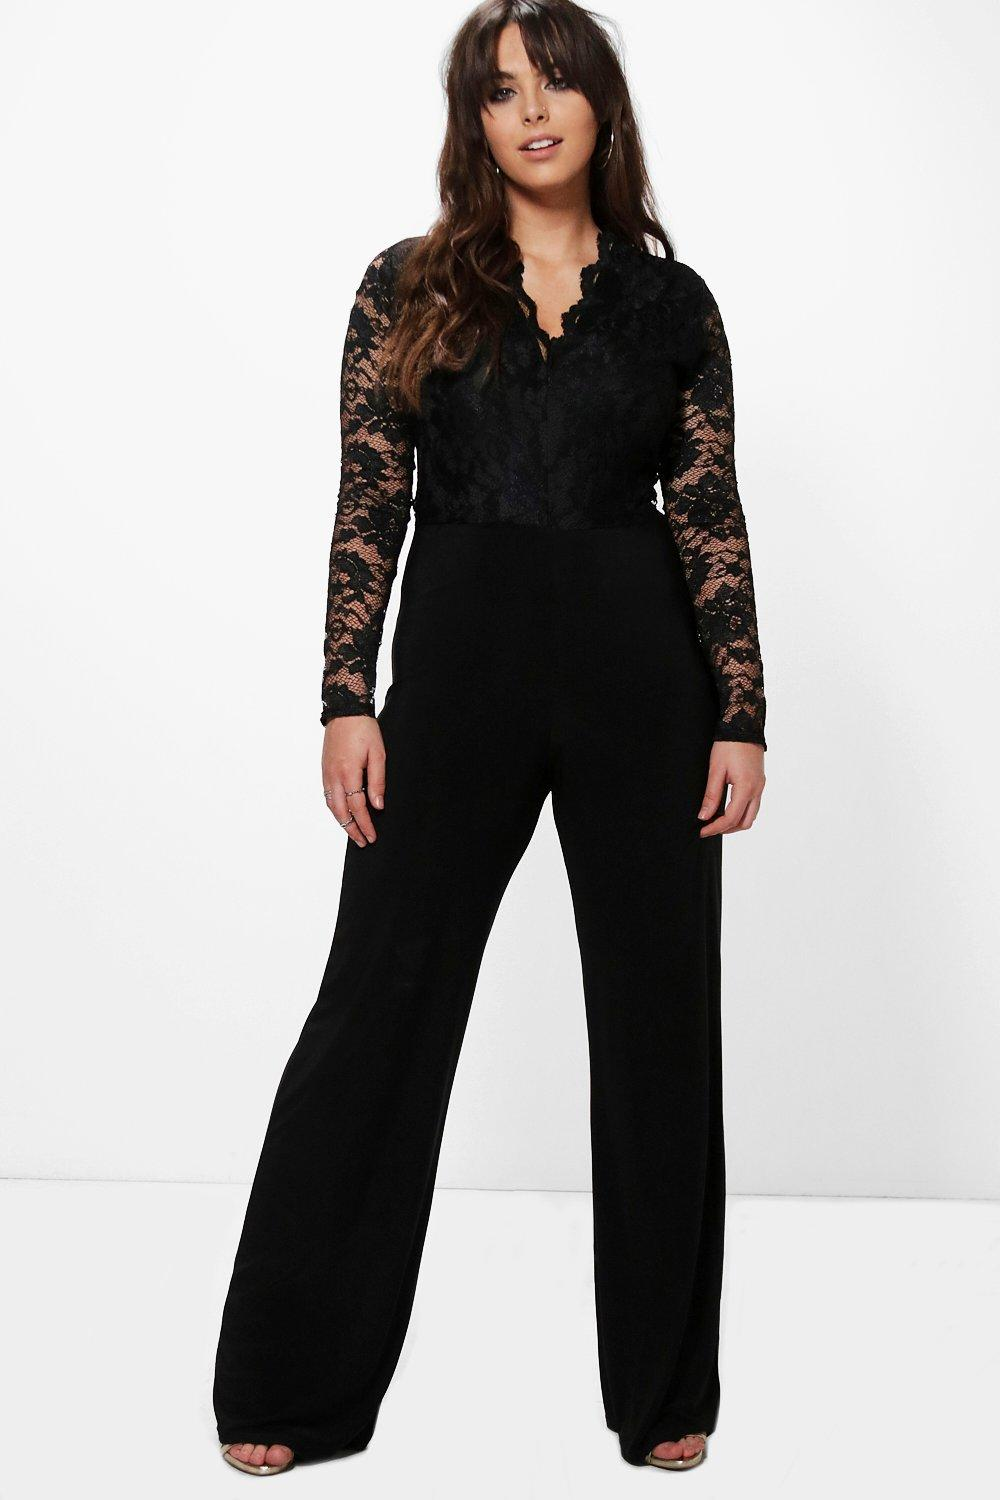 60s 70s Plus Size Dresses, Clothing, Costumes Plus  Long Sleeve Lace Top Slinky Jumpsuit $40.00 AT vintagedancer.com